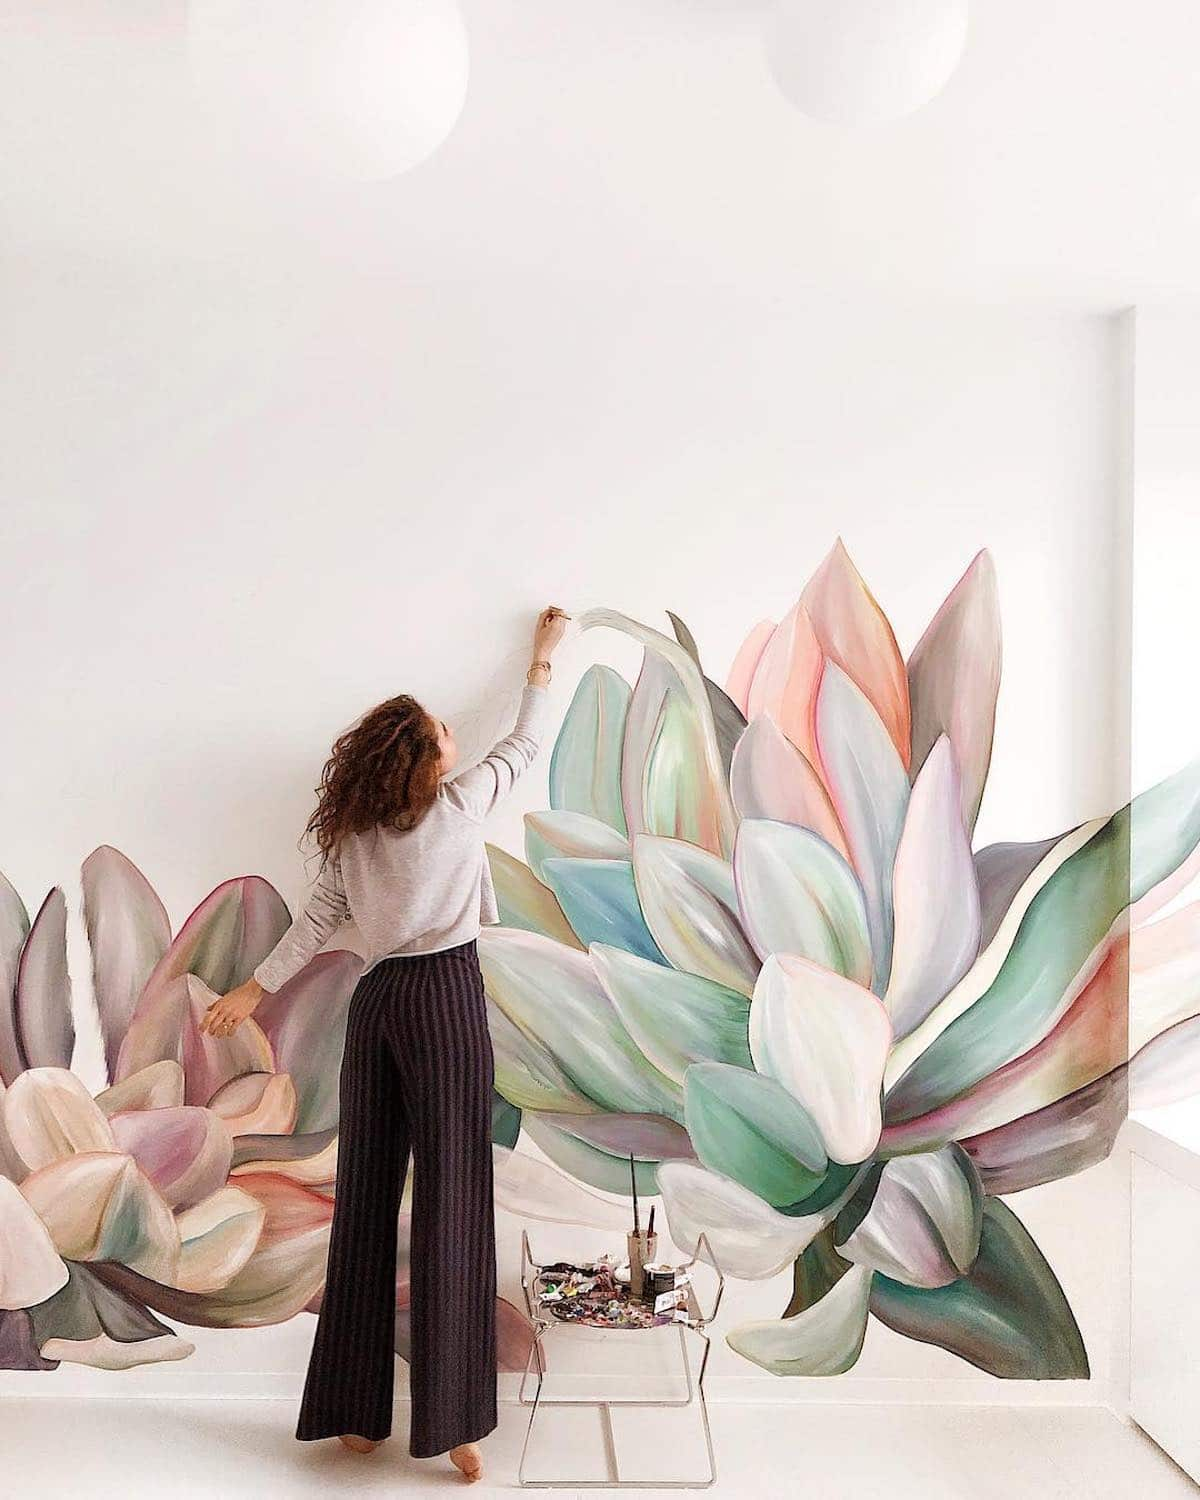 Art Mural by Lilit Sargsyan